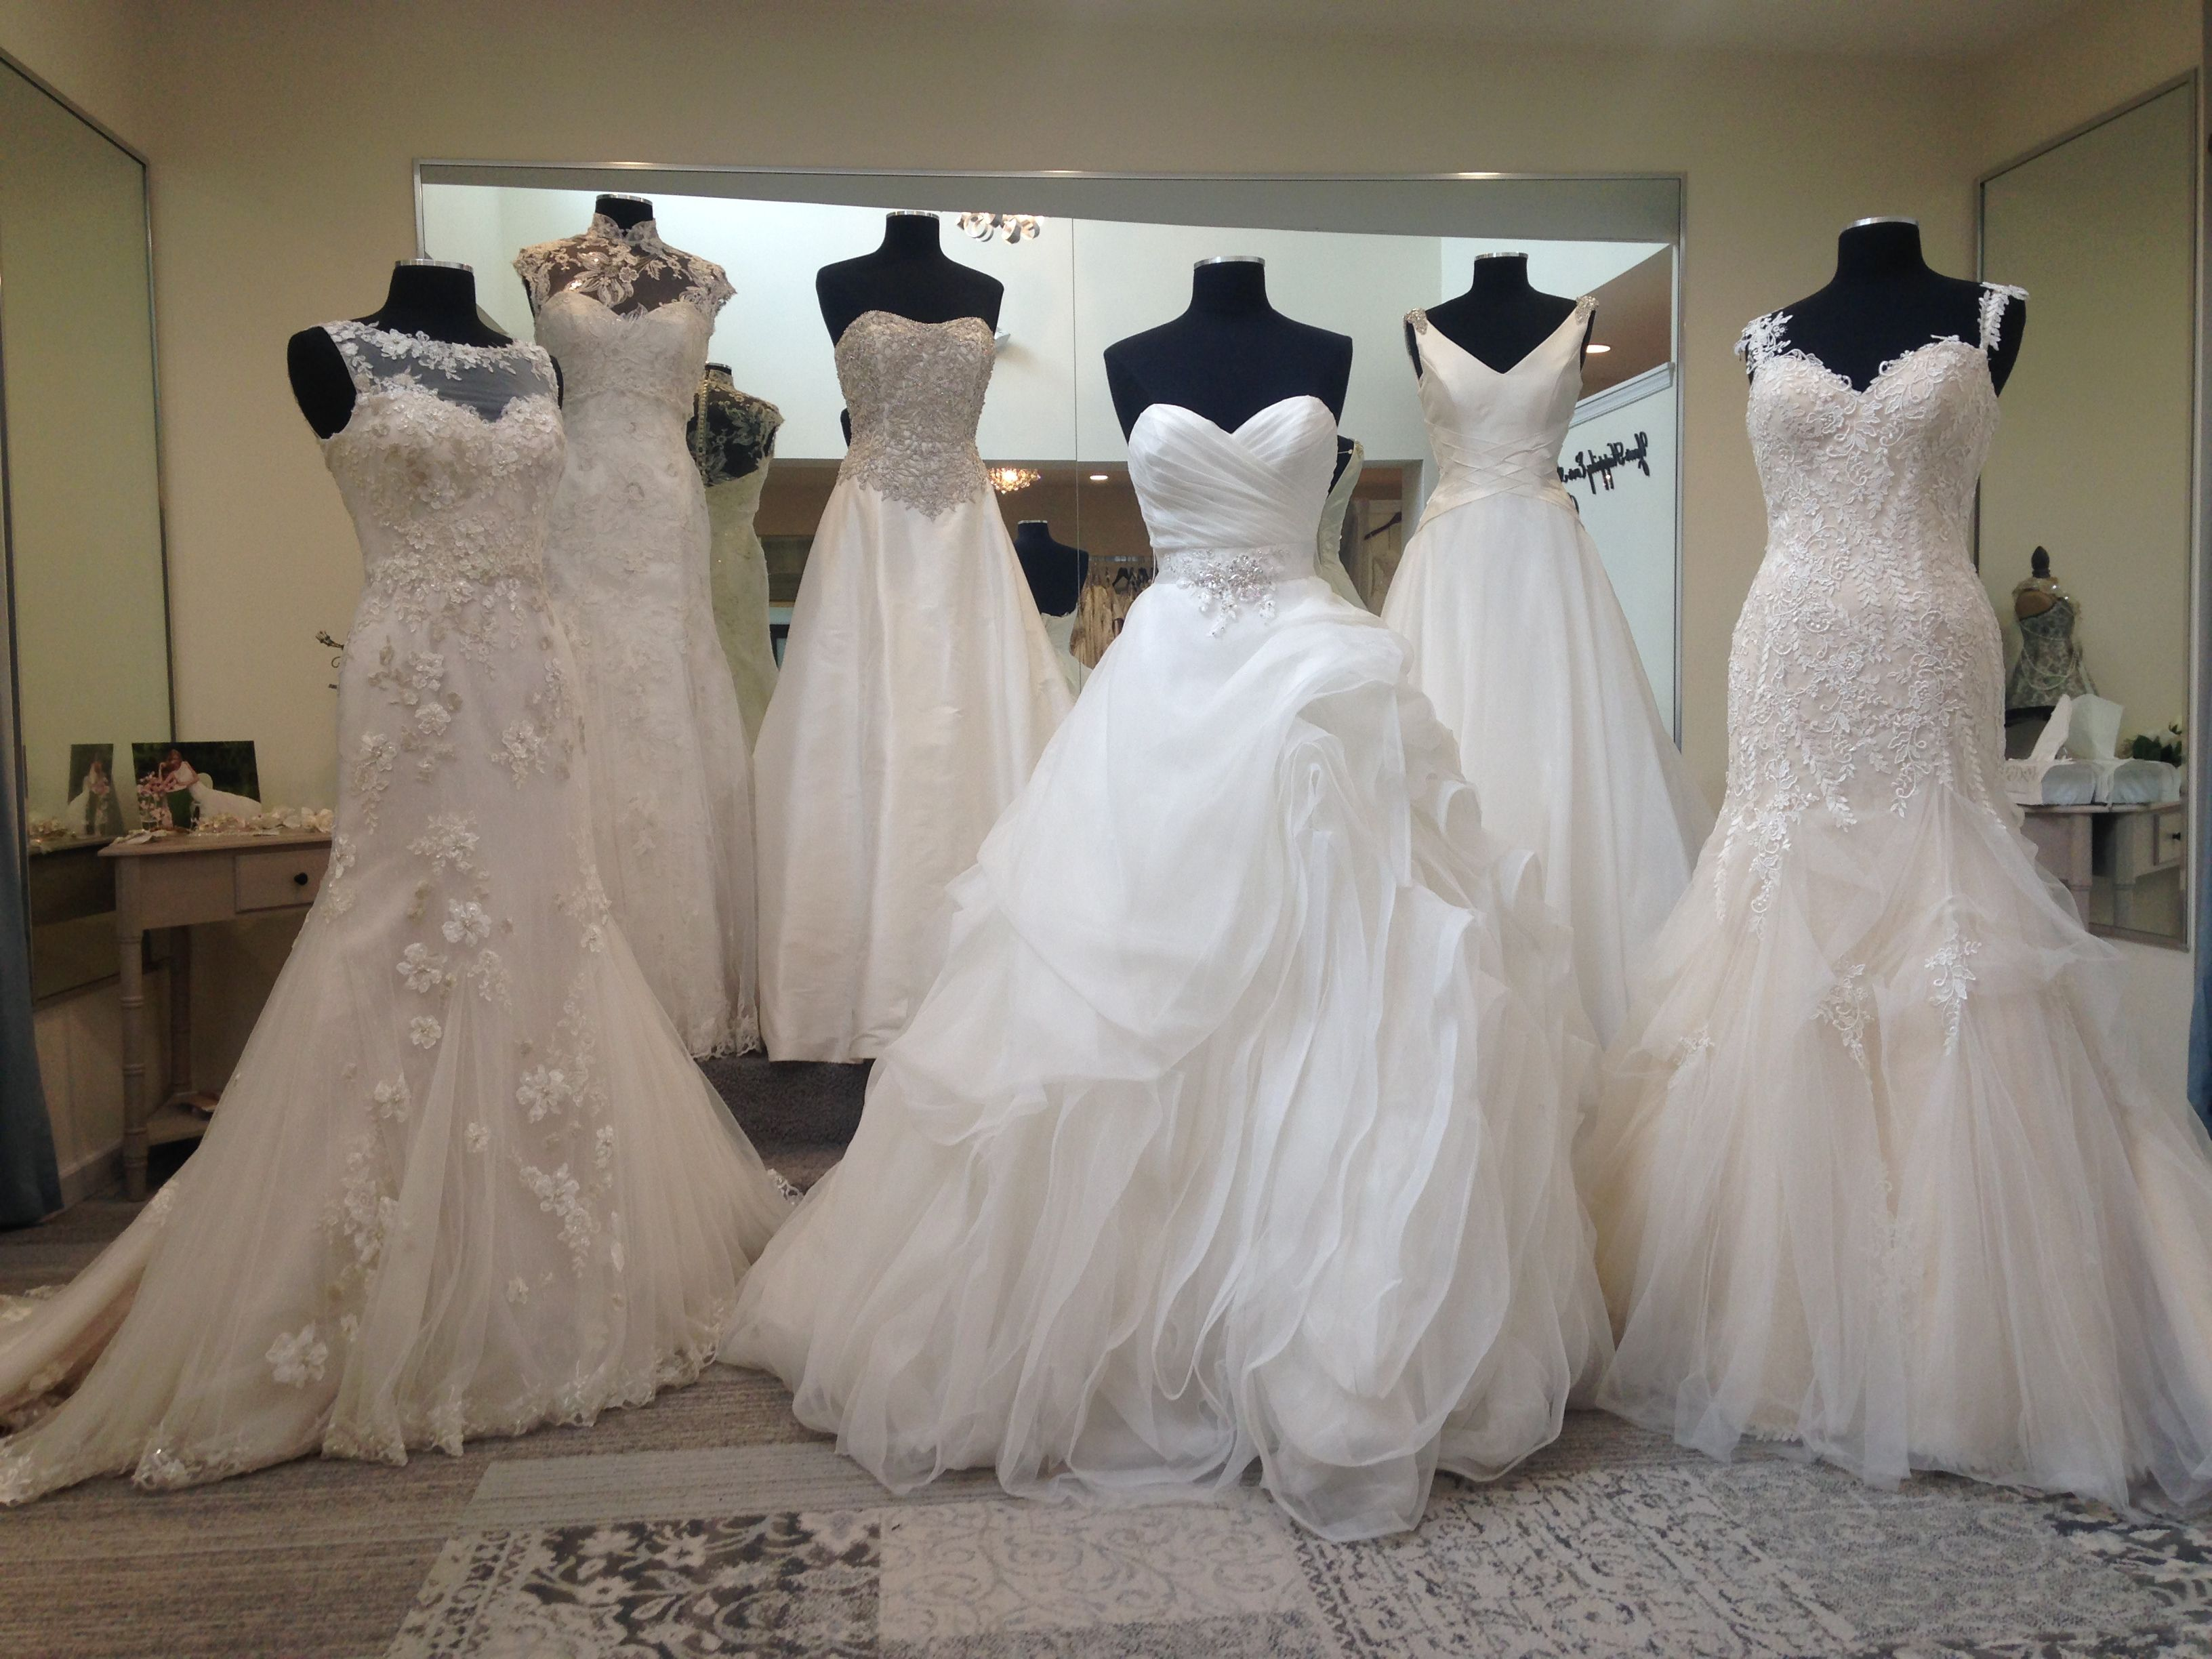 ***Exclusive*** ONLY To L&H Bridal 6 ONE-OF-A-KIND Justin